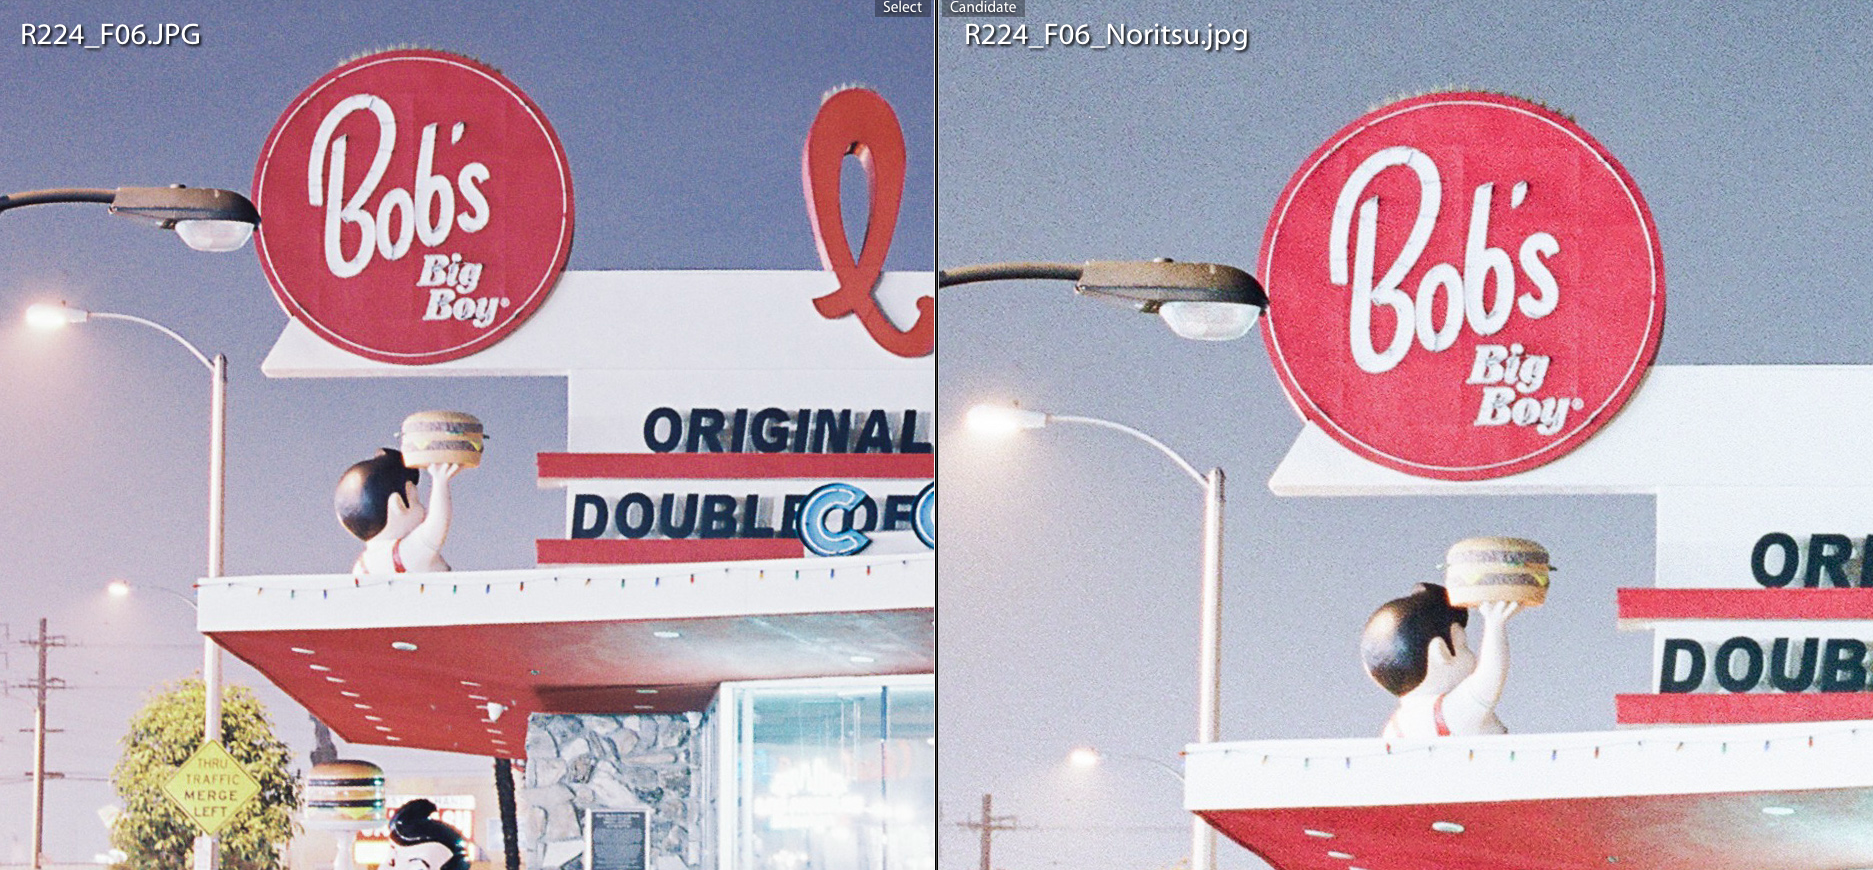 100% view - Fuji Frontier on the left vs. Noritsu on the right - Obviously the little smaller resolution of the Frontier can be noticed at 100%. Pixel quality in both scans is outstanding. Grain and sharpness is what I would expect from a good and detailed scan.